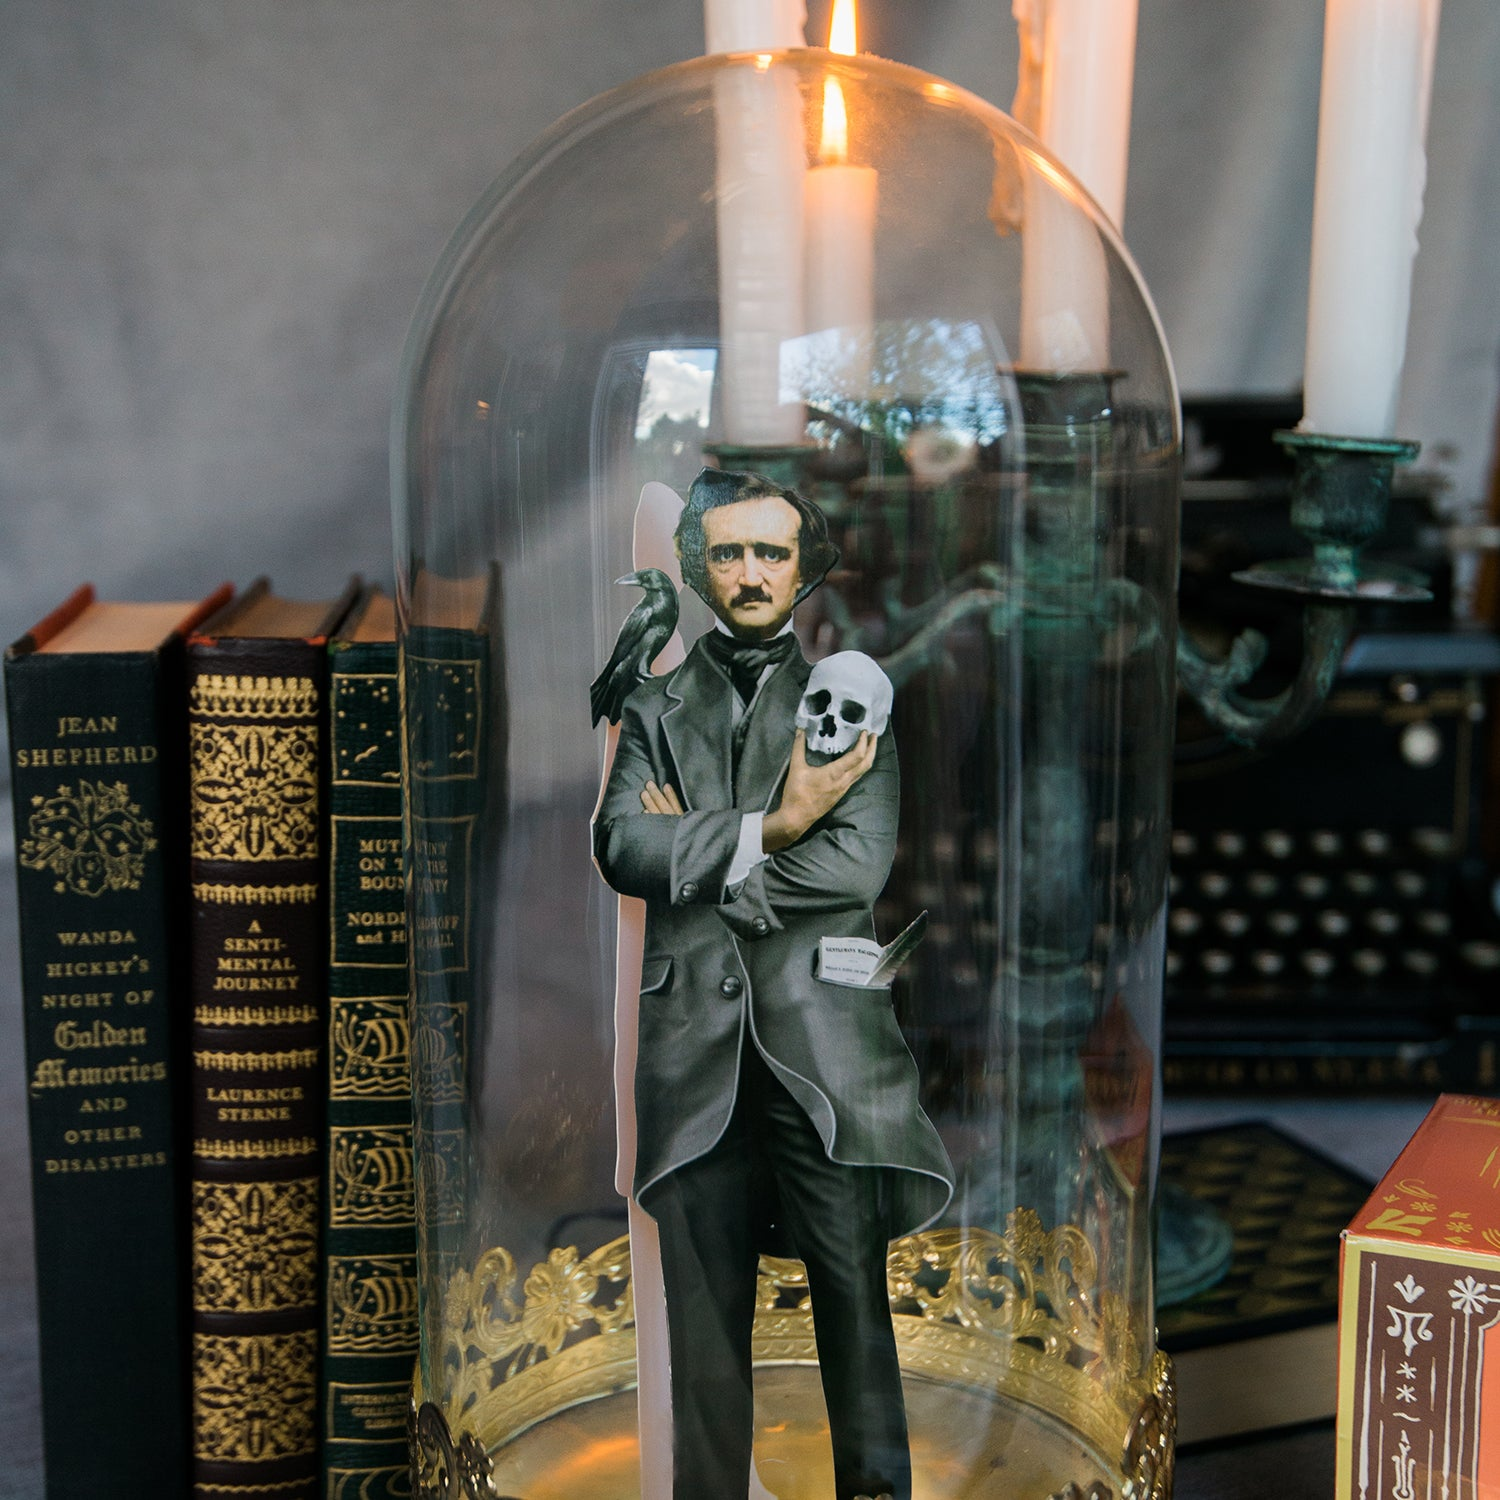 Edgar Allan Poe Unique Gifts For Book Lover My Weekend is Booked